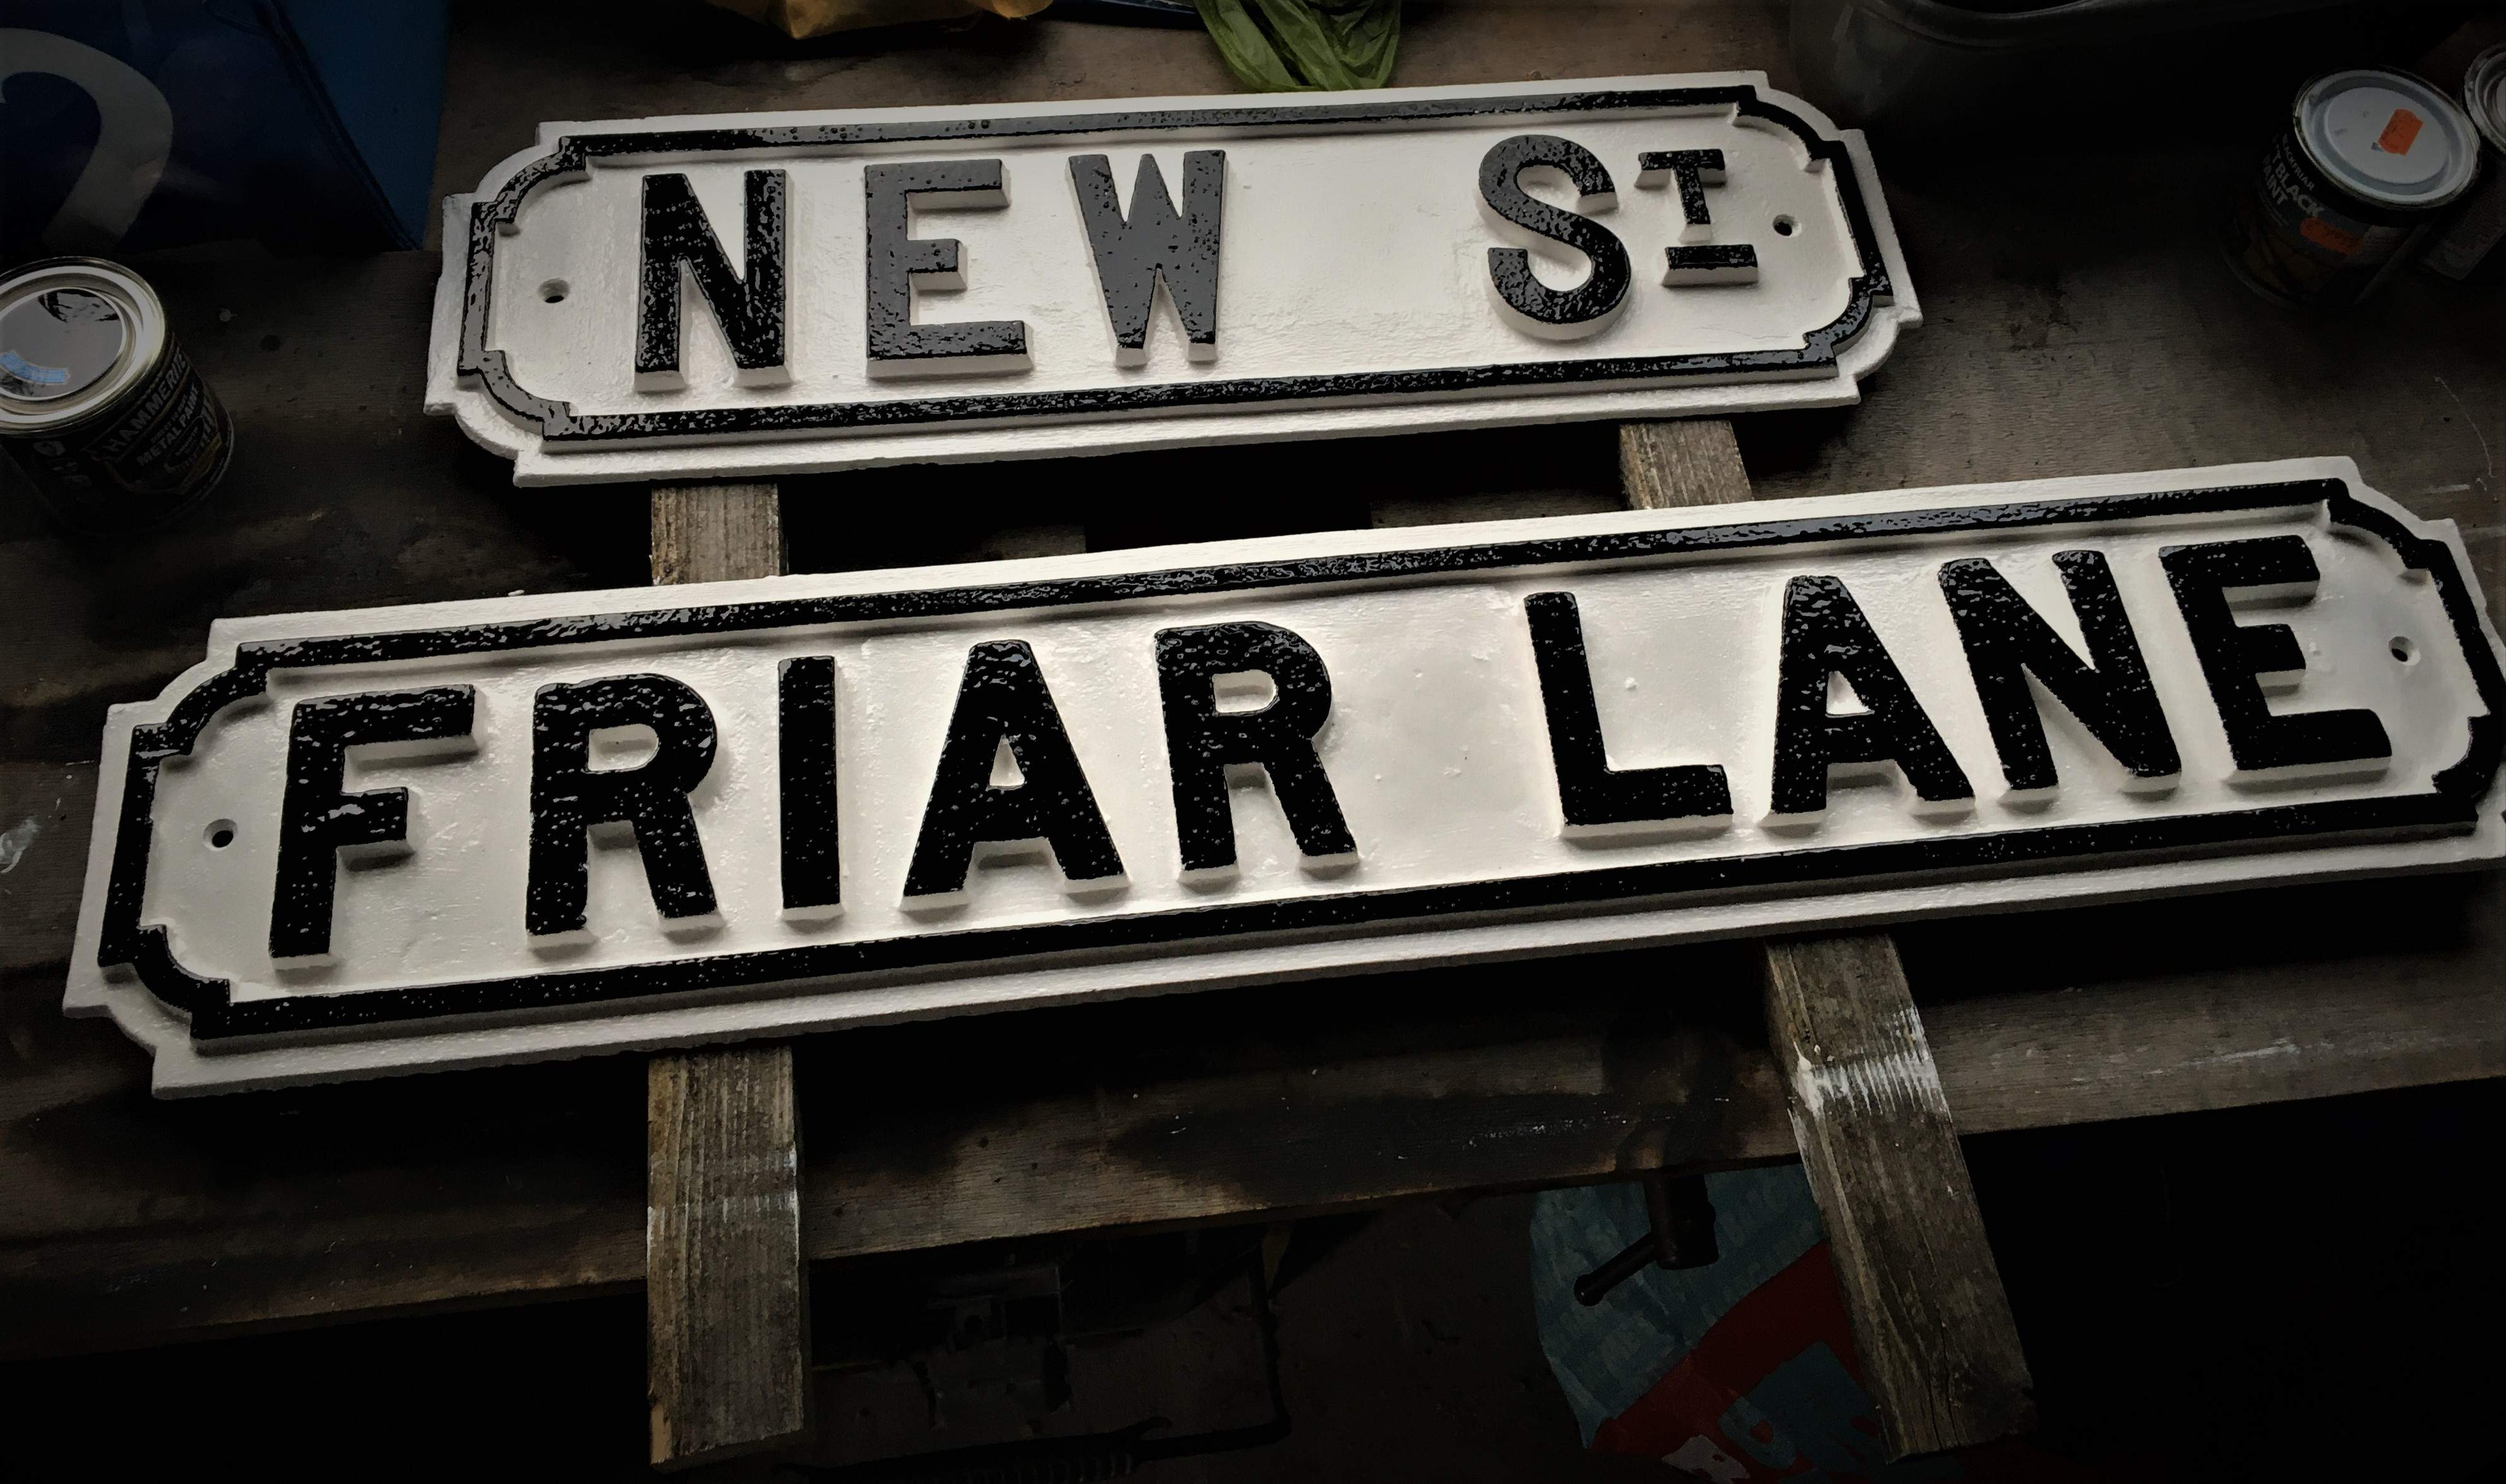 Refurbished street signs